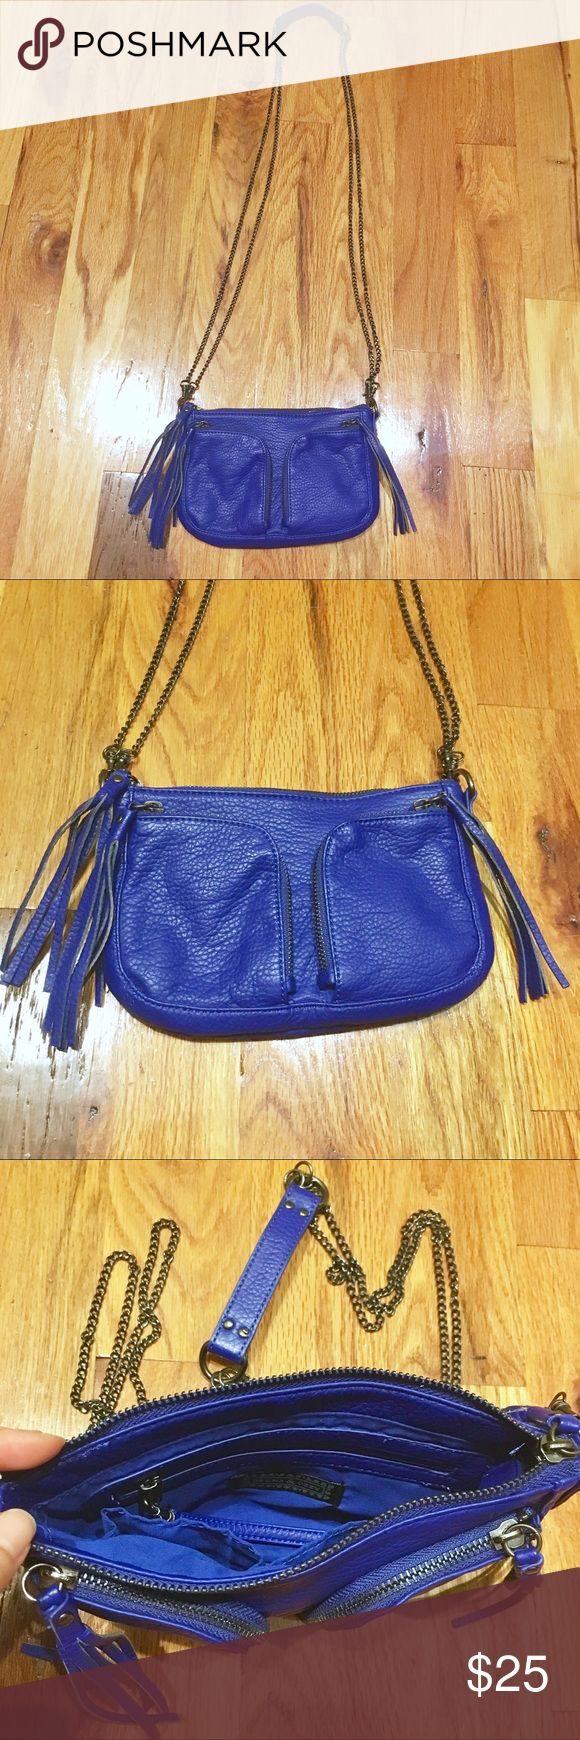 """Vegan faux leather purse 9x6 NWOT Deena & Ozzy vegan faux leather purse NWOT bought from Urban Outfitters.  9"""" x 6"""" with fringe tassels and detachable chain cross body shoulder strap (can be worn with the long chain strap or as a cute clutch), zippered pockets, vibrant blue and pebbled pleather, perfect condition. Deena & Ozzy Bags"""